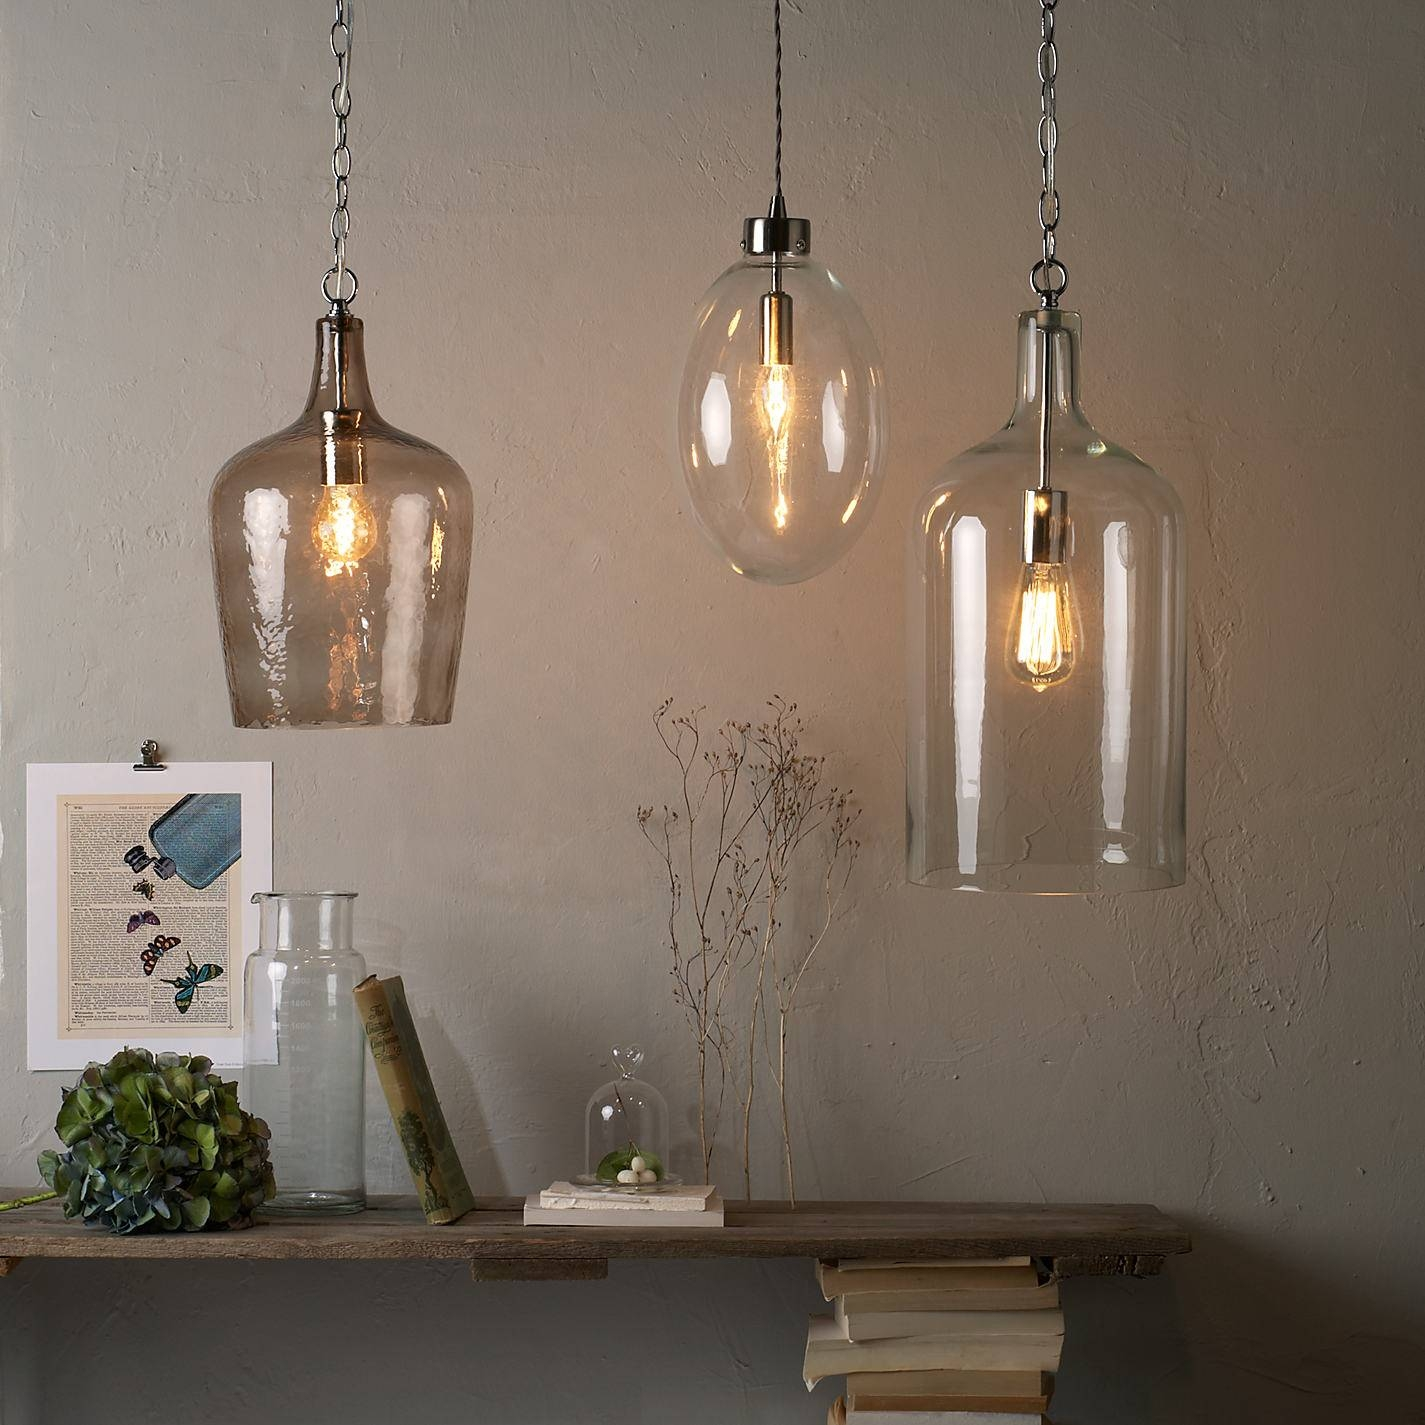 Assorted Colour Industrial Wine Glass Bottle Pendant Lamp Come with regard to Wine Jug Pendant Lights (Image 2 of 15)